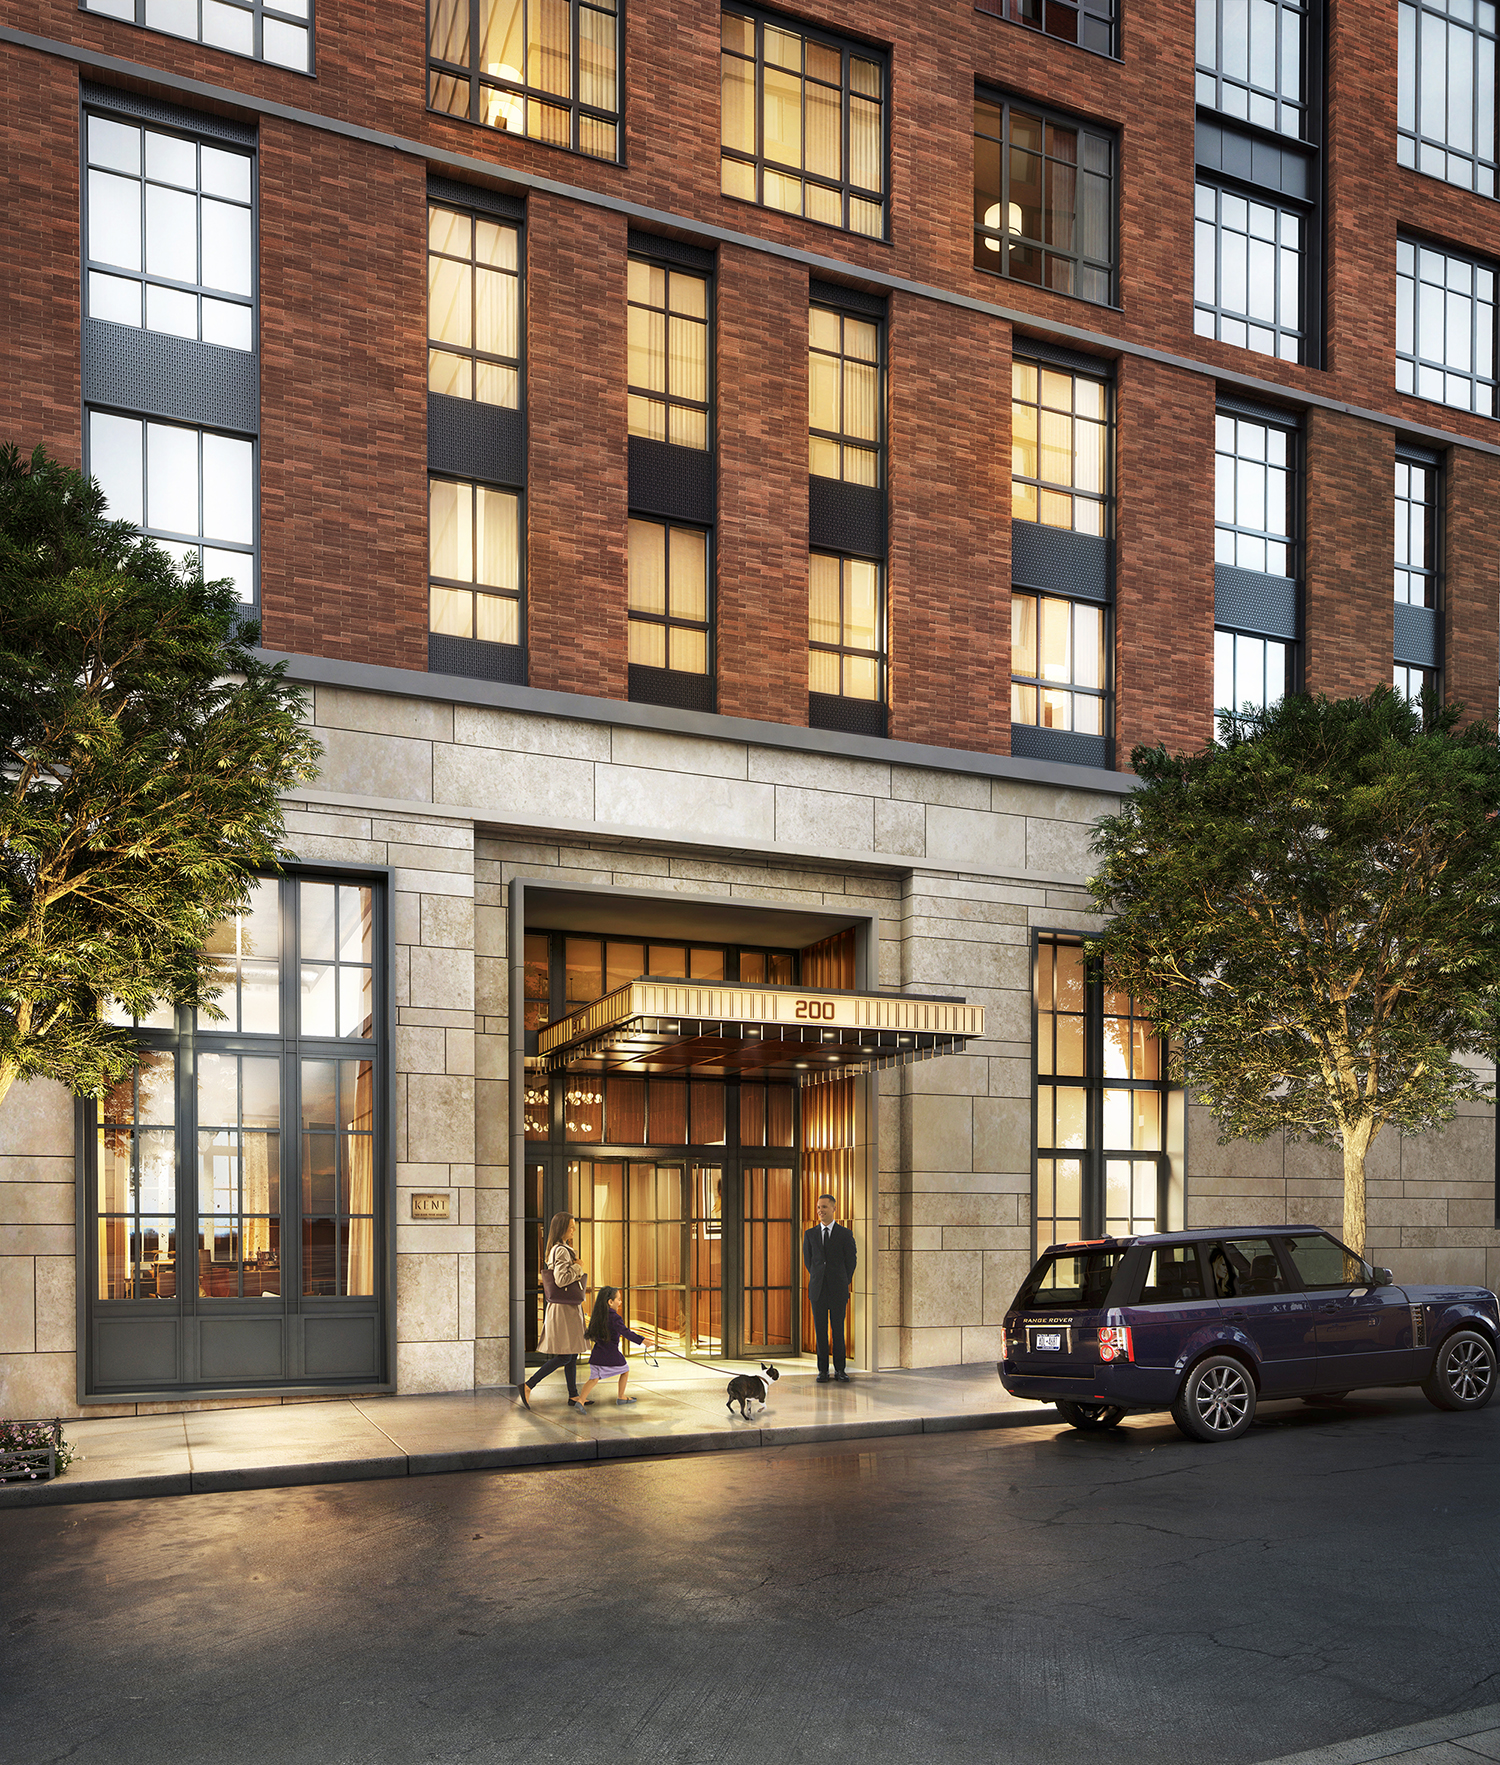 Rendering of the entrance to The Kent, 200 East 95th Street